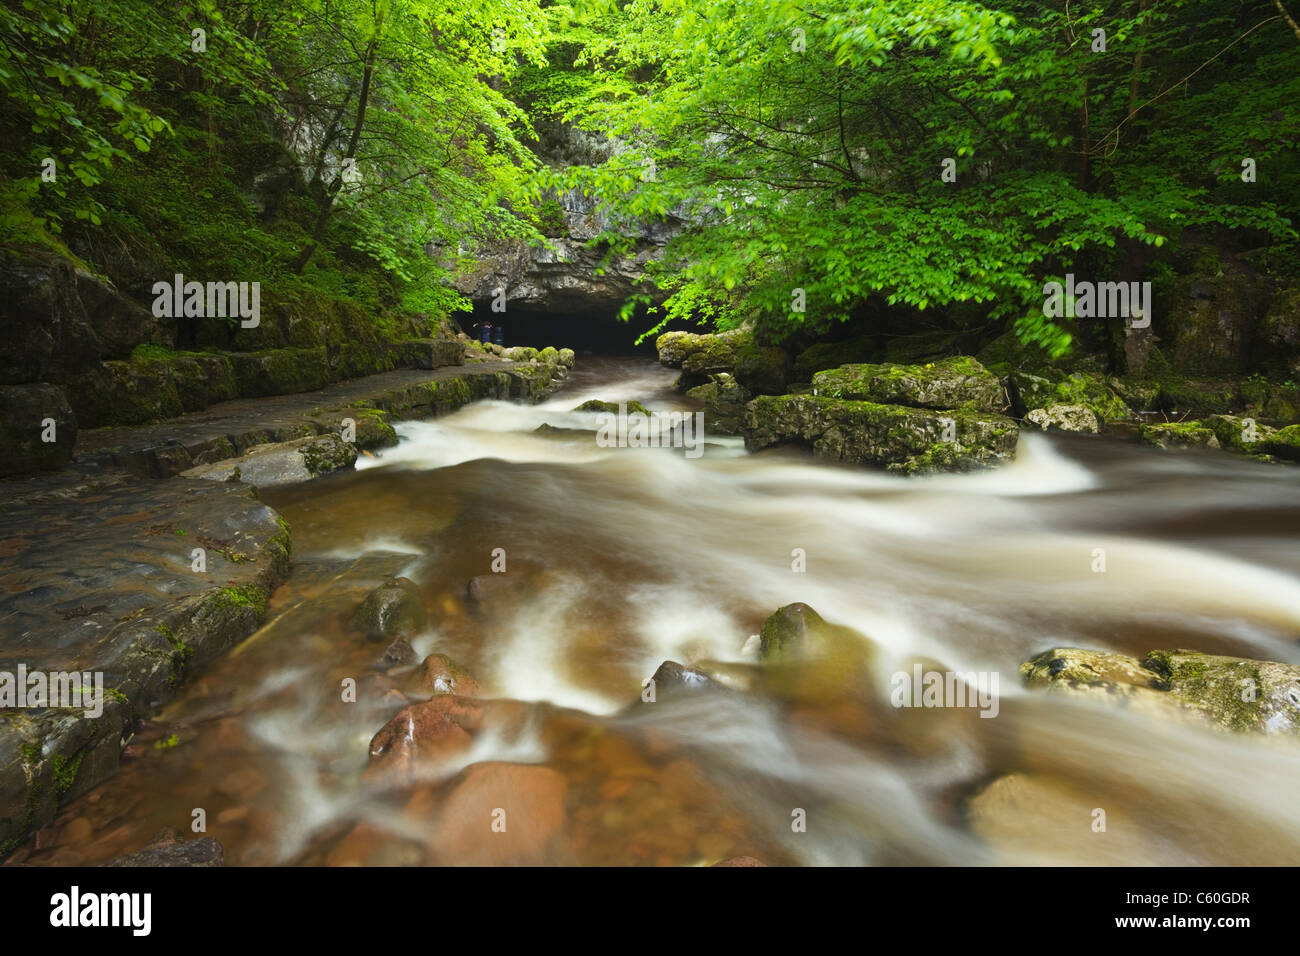 River Mellte flowing into Porth yr Ogof Cave Near Ystradfellte. Brecon Beacons National Park. Powys. Wales. UK. - Stock Image